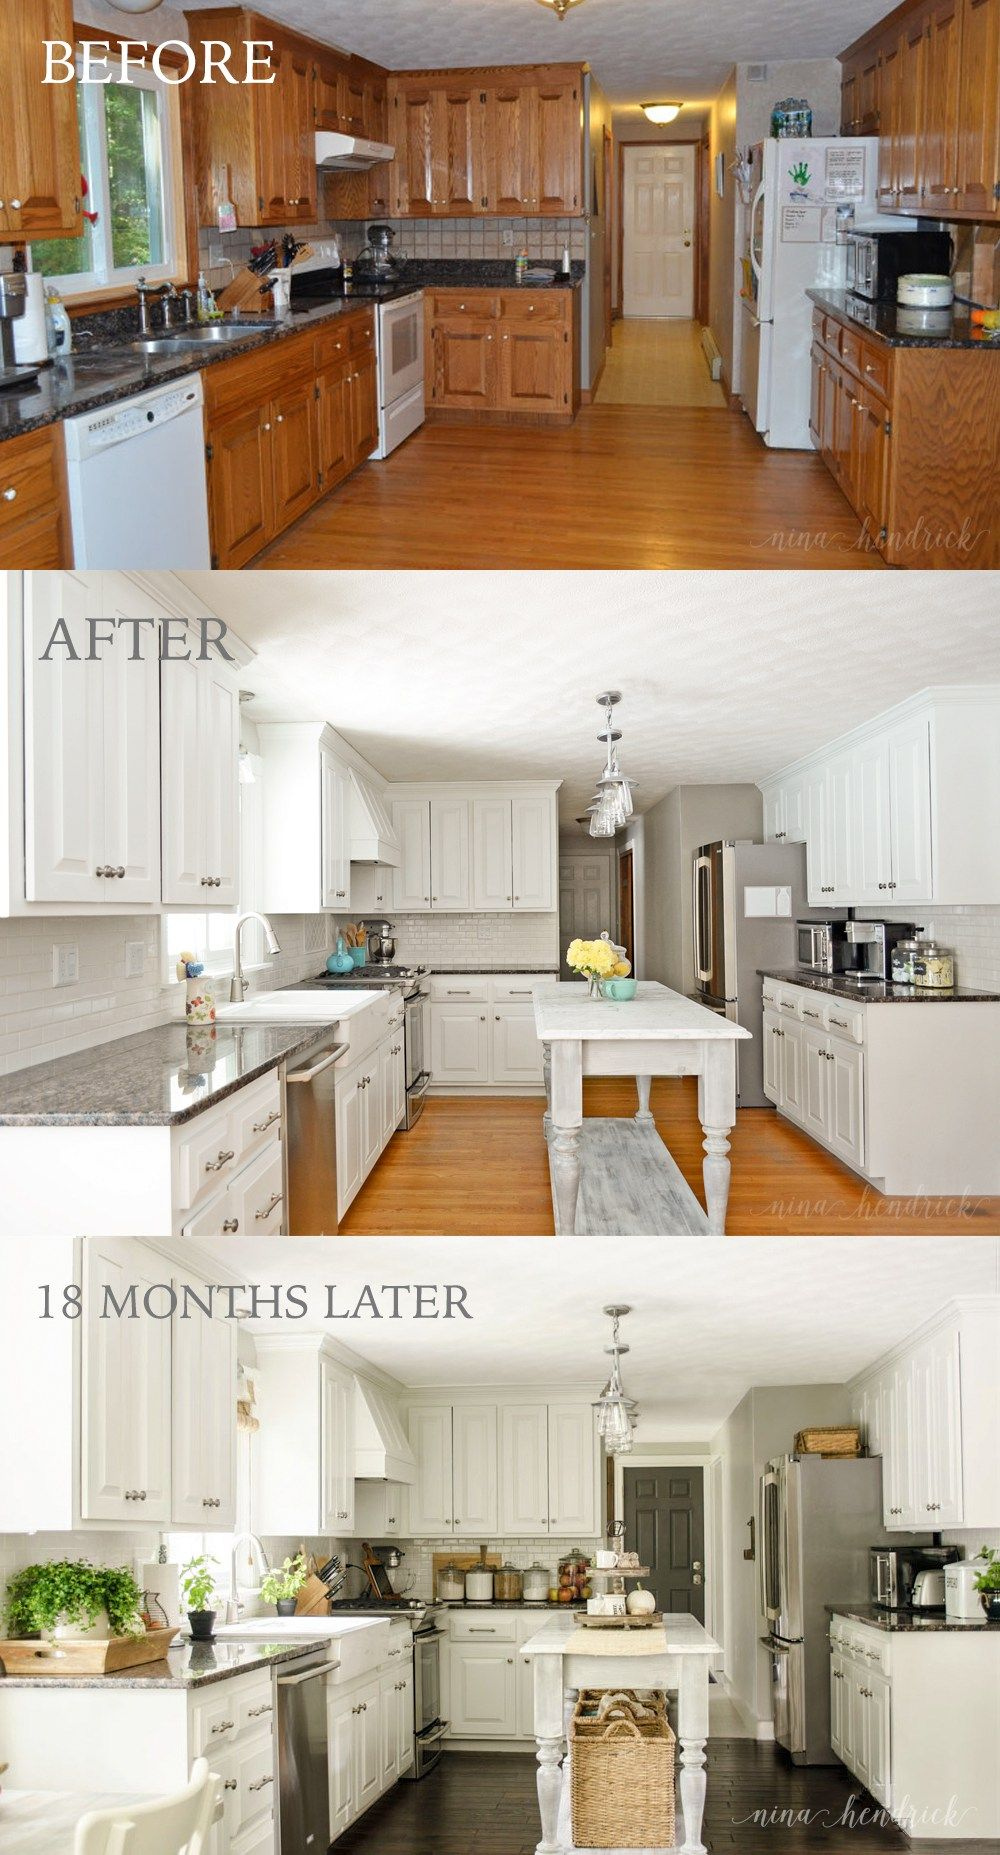 White Painted Kitchen Before, After, U0026 18 Months Later By @nina_hendrick Nice Design